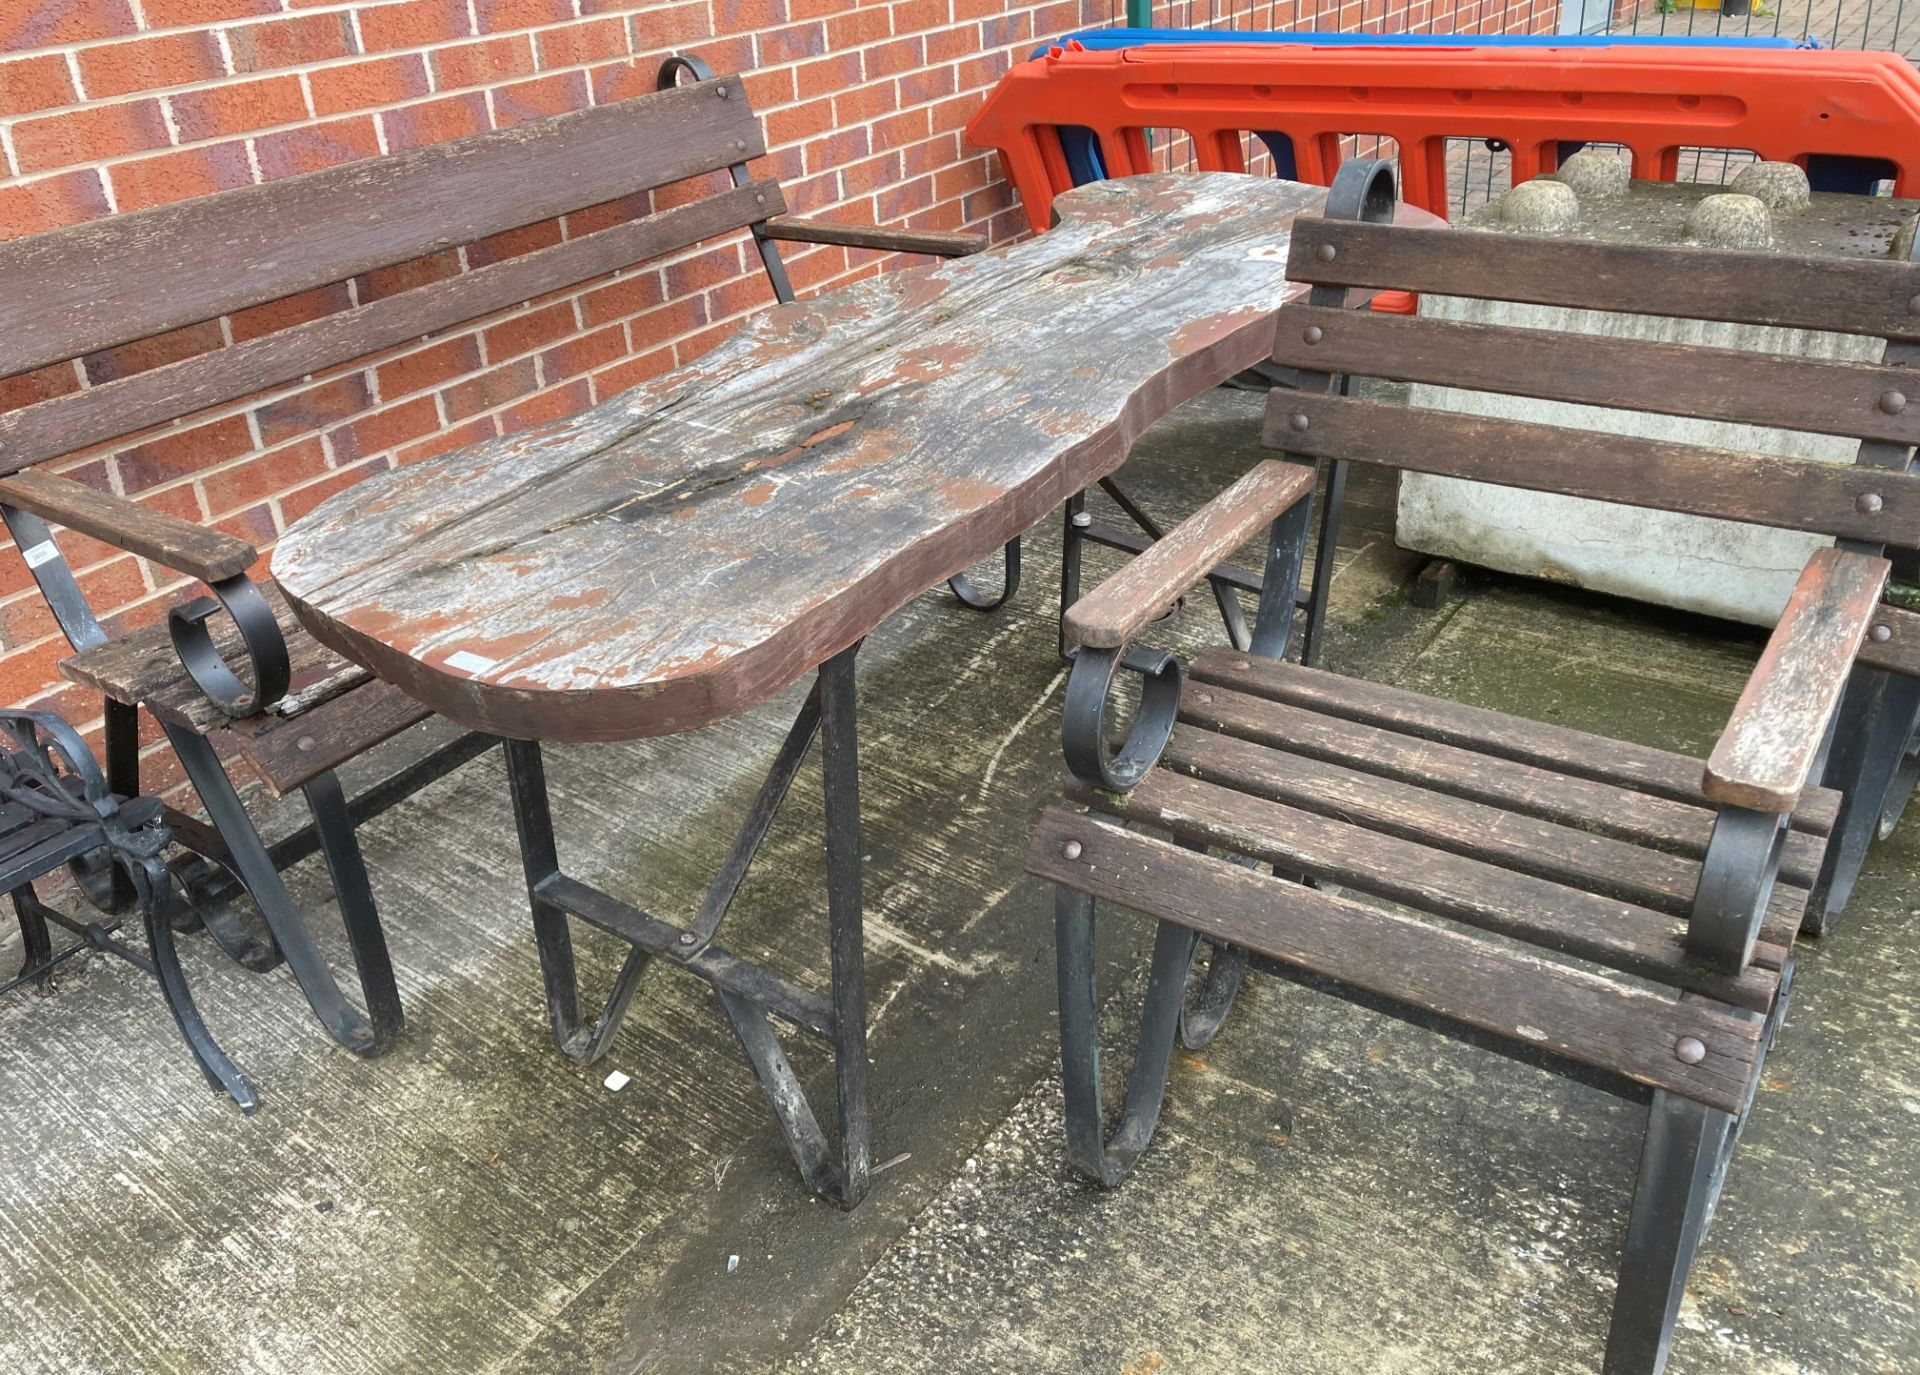 A custom made black metal framed garden table with wooden top 175cm x 54cm together with a matching - Image 2 of 2